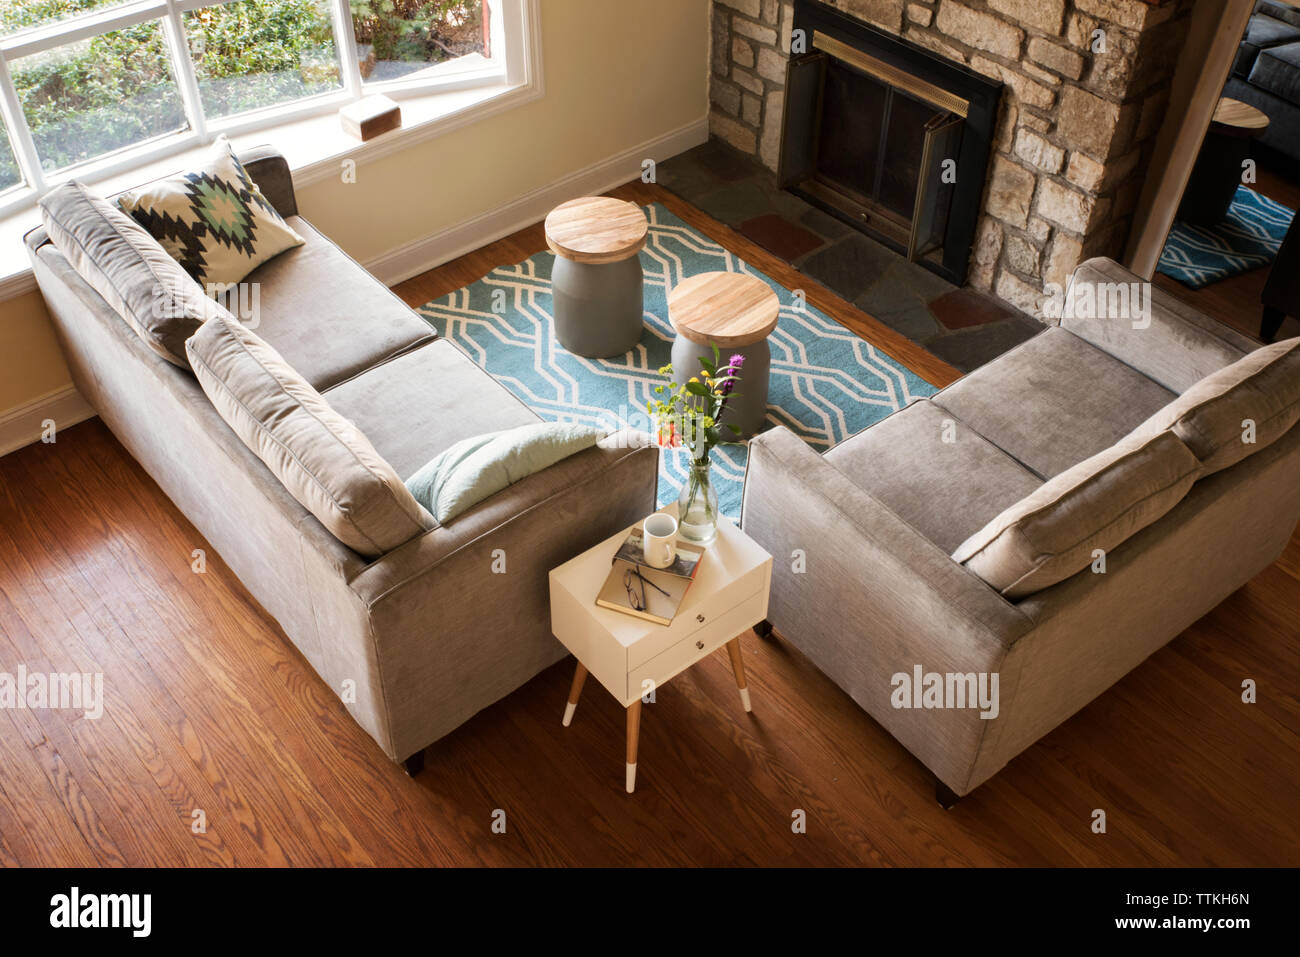 Overhead view of gray sofas in living room - Stock Image